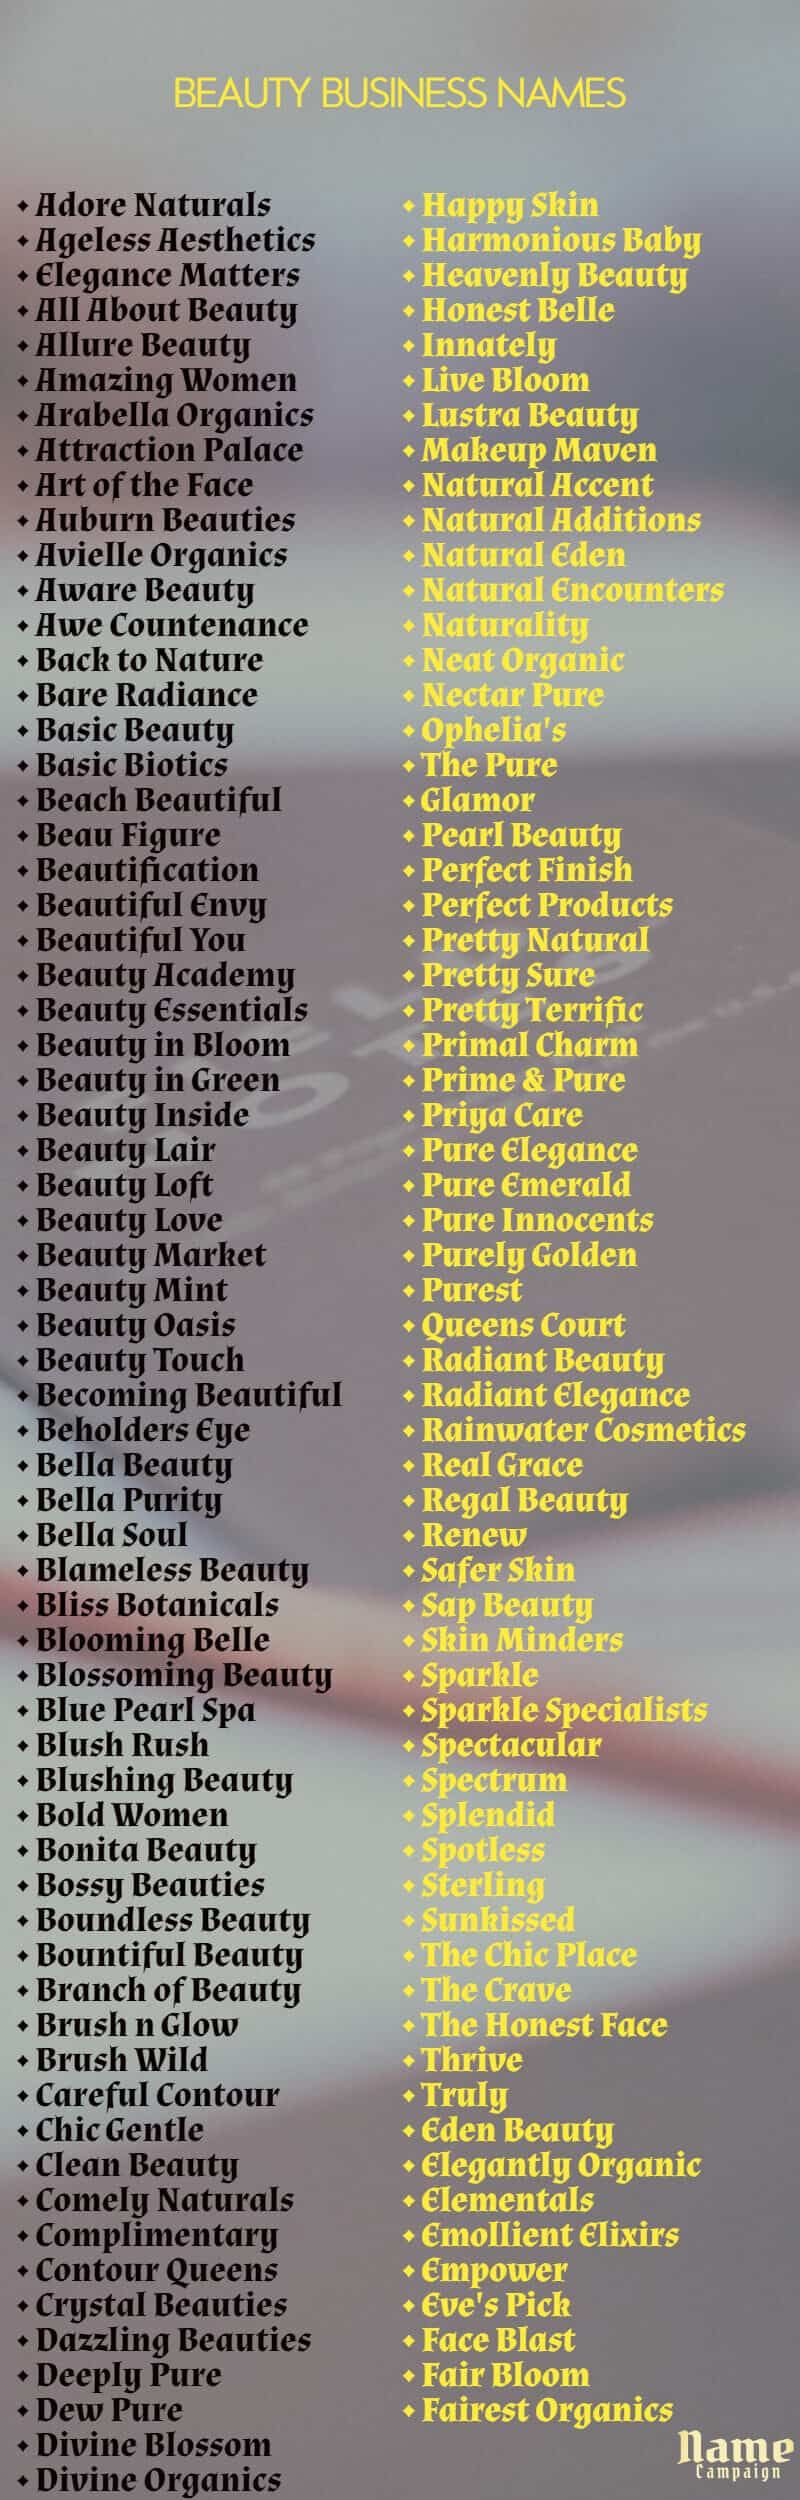 Beauty Business Names Ideas